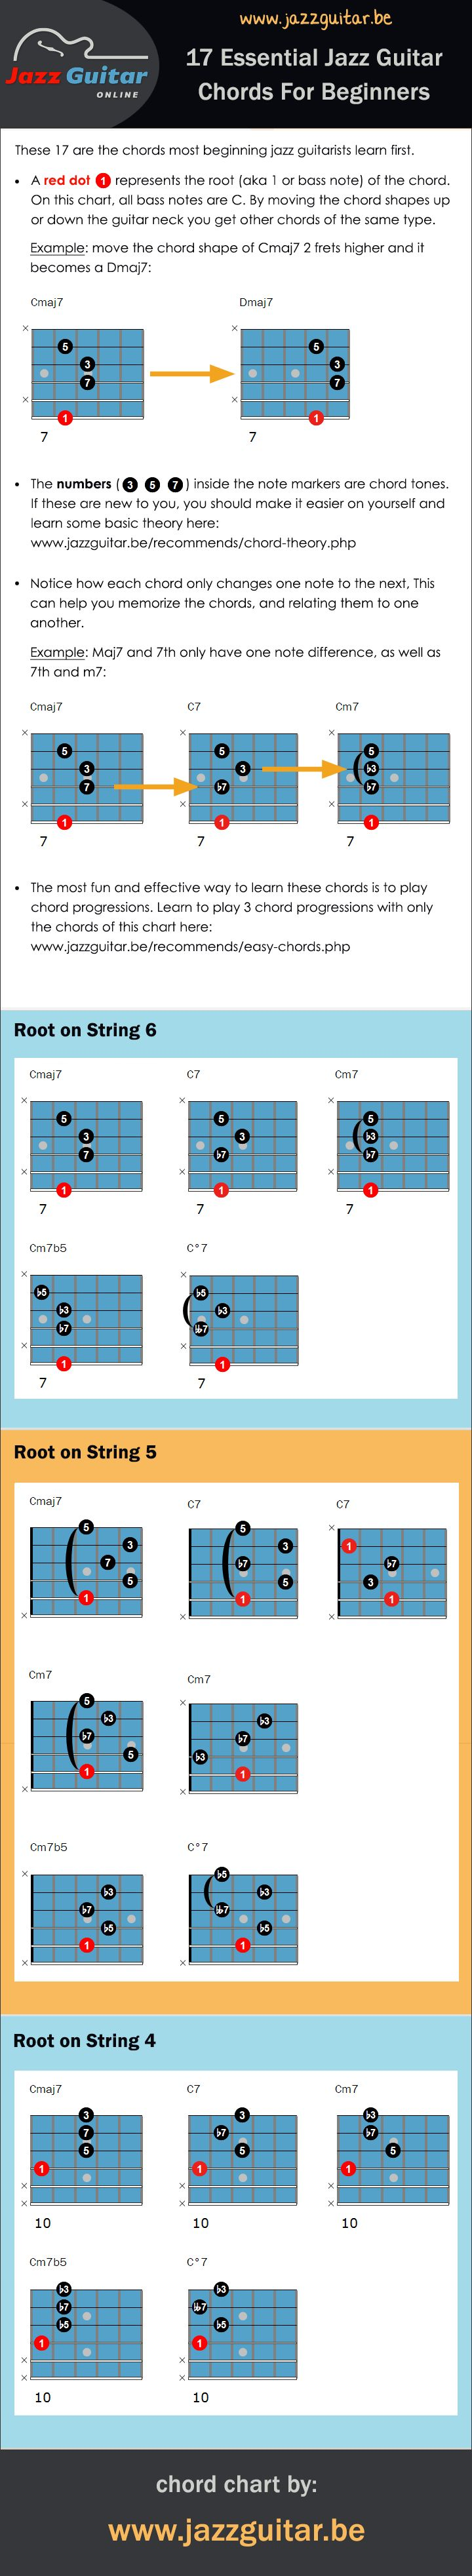 17 Essential Jazz Guitar Chords For Beginners: a jazz guitar chord chart for beginners. These are the 17 chords every beginning jazz guitarist should learn first...